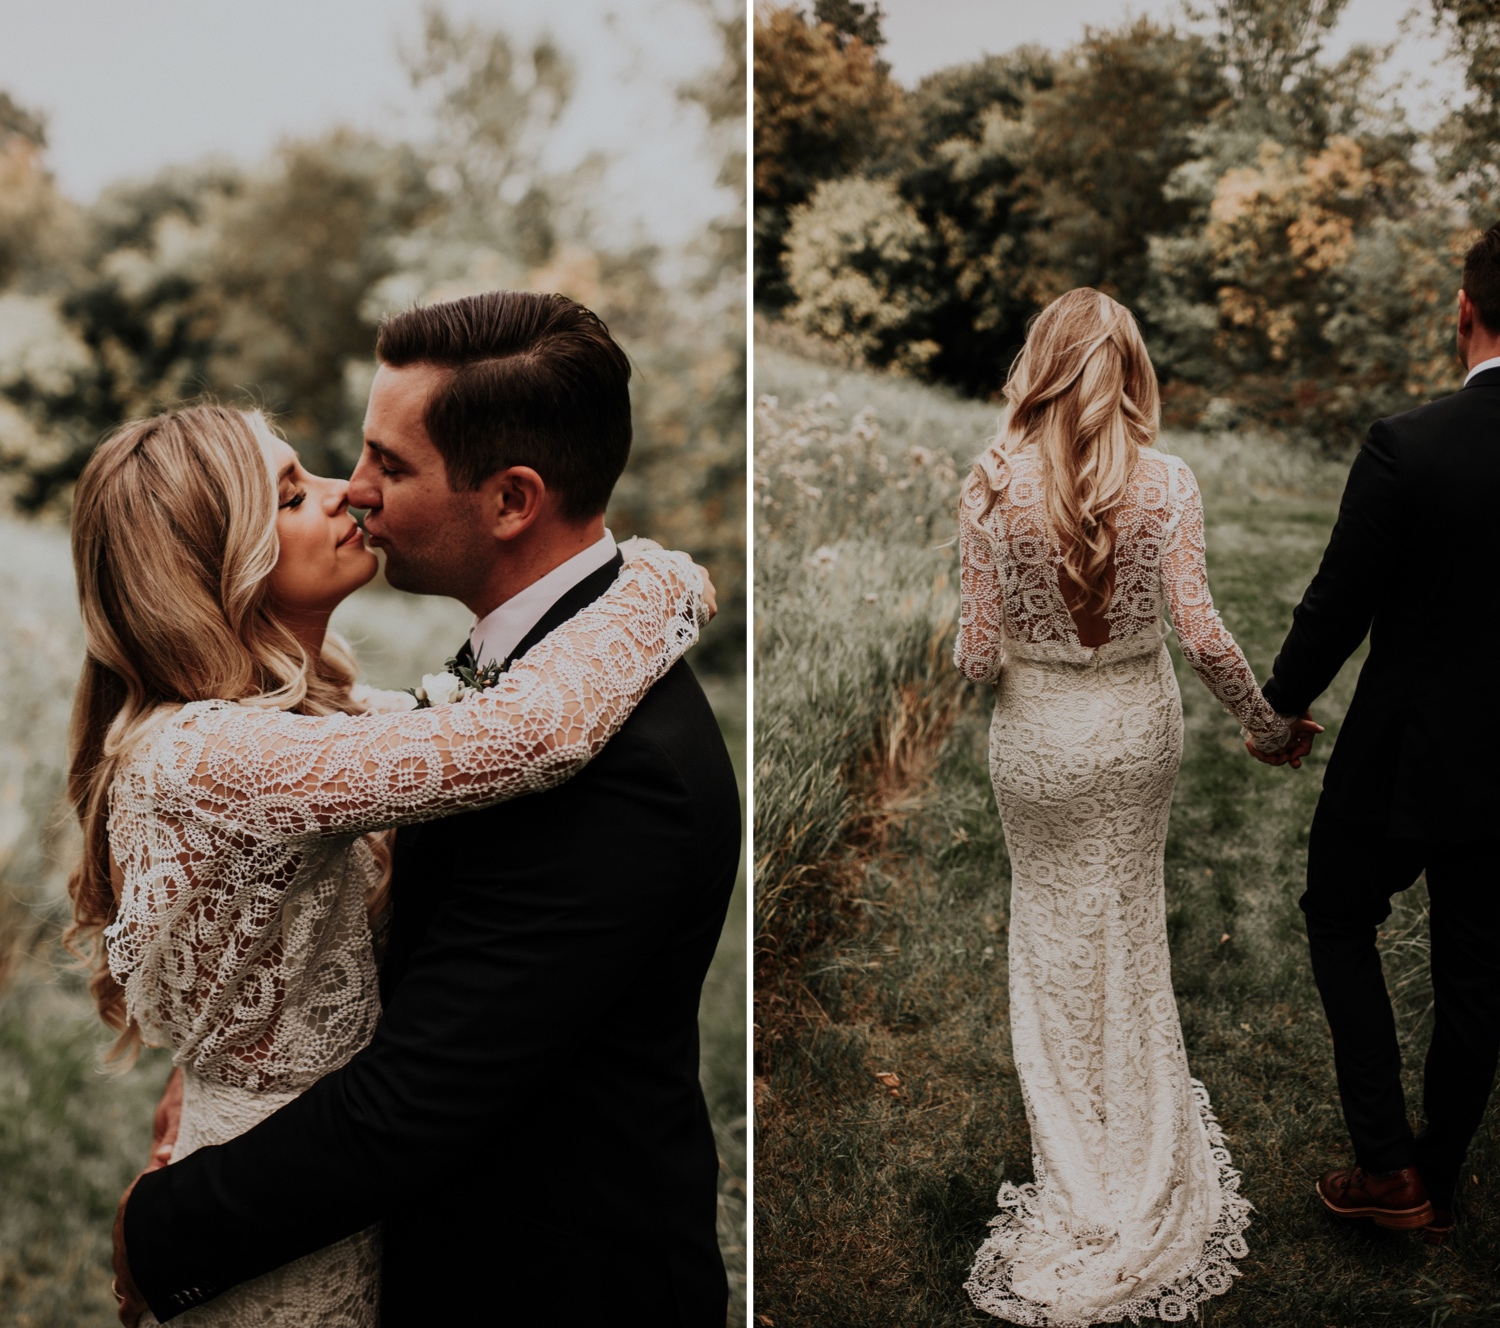 Wedding and Elopement Photography_Karly Ford Photo 02.jpg